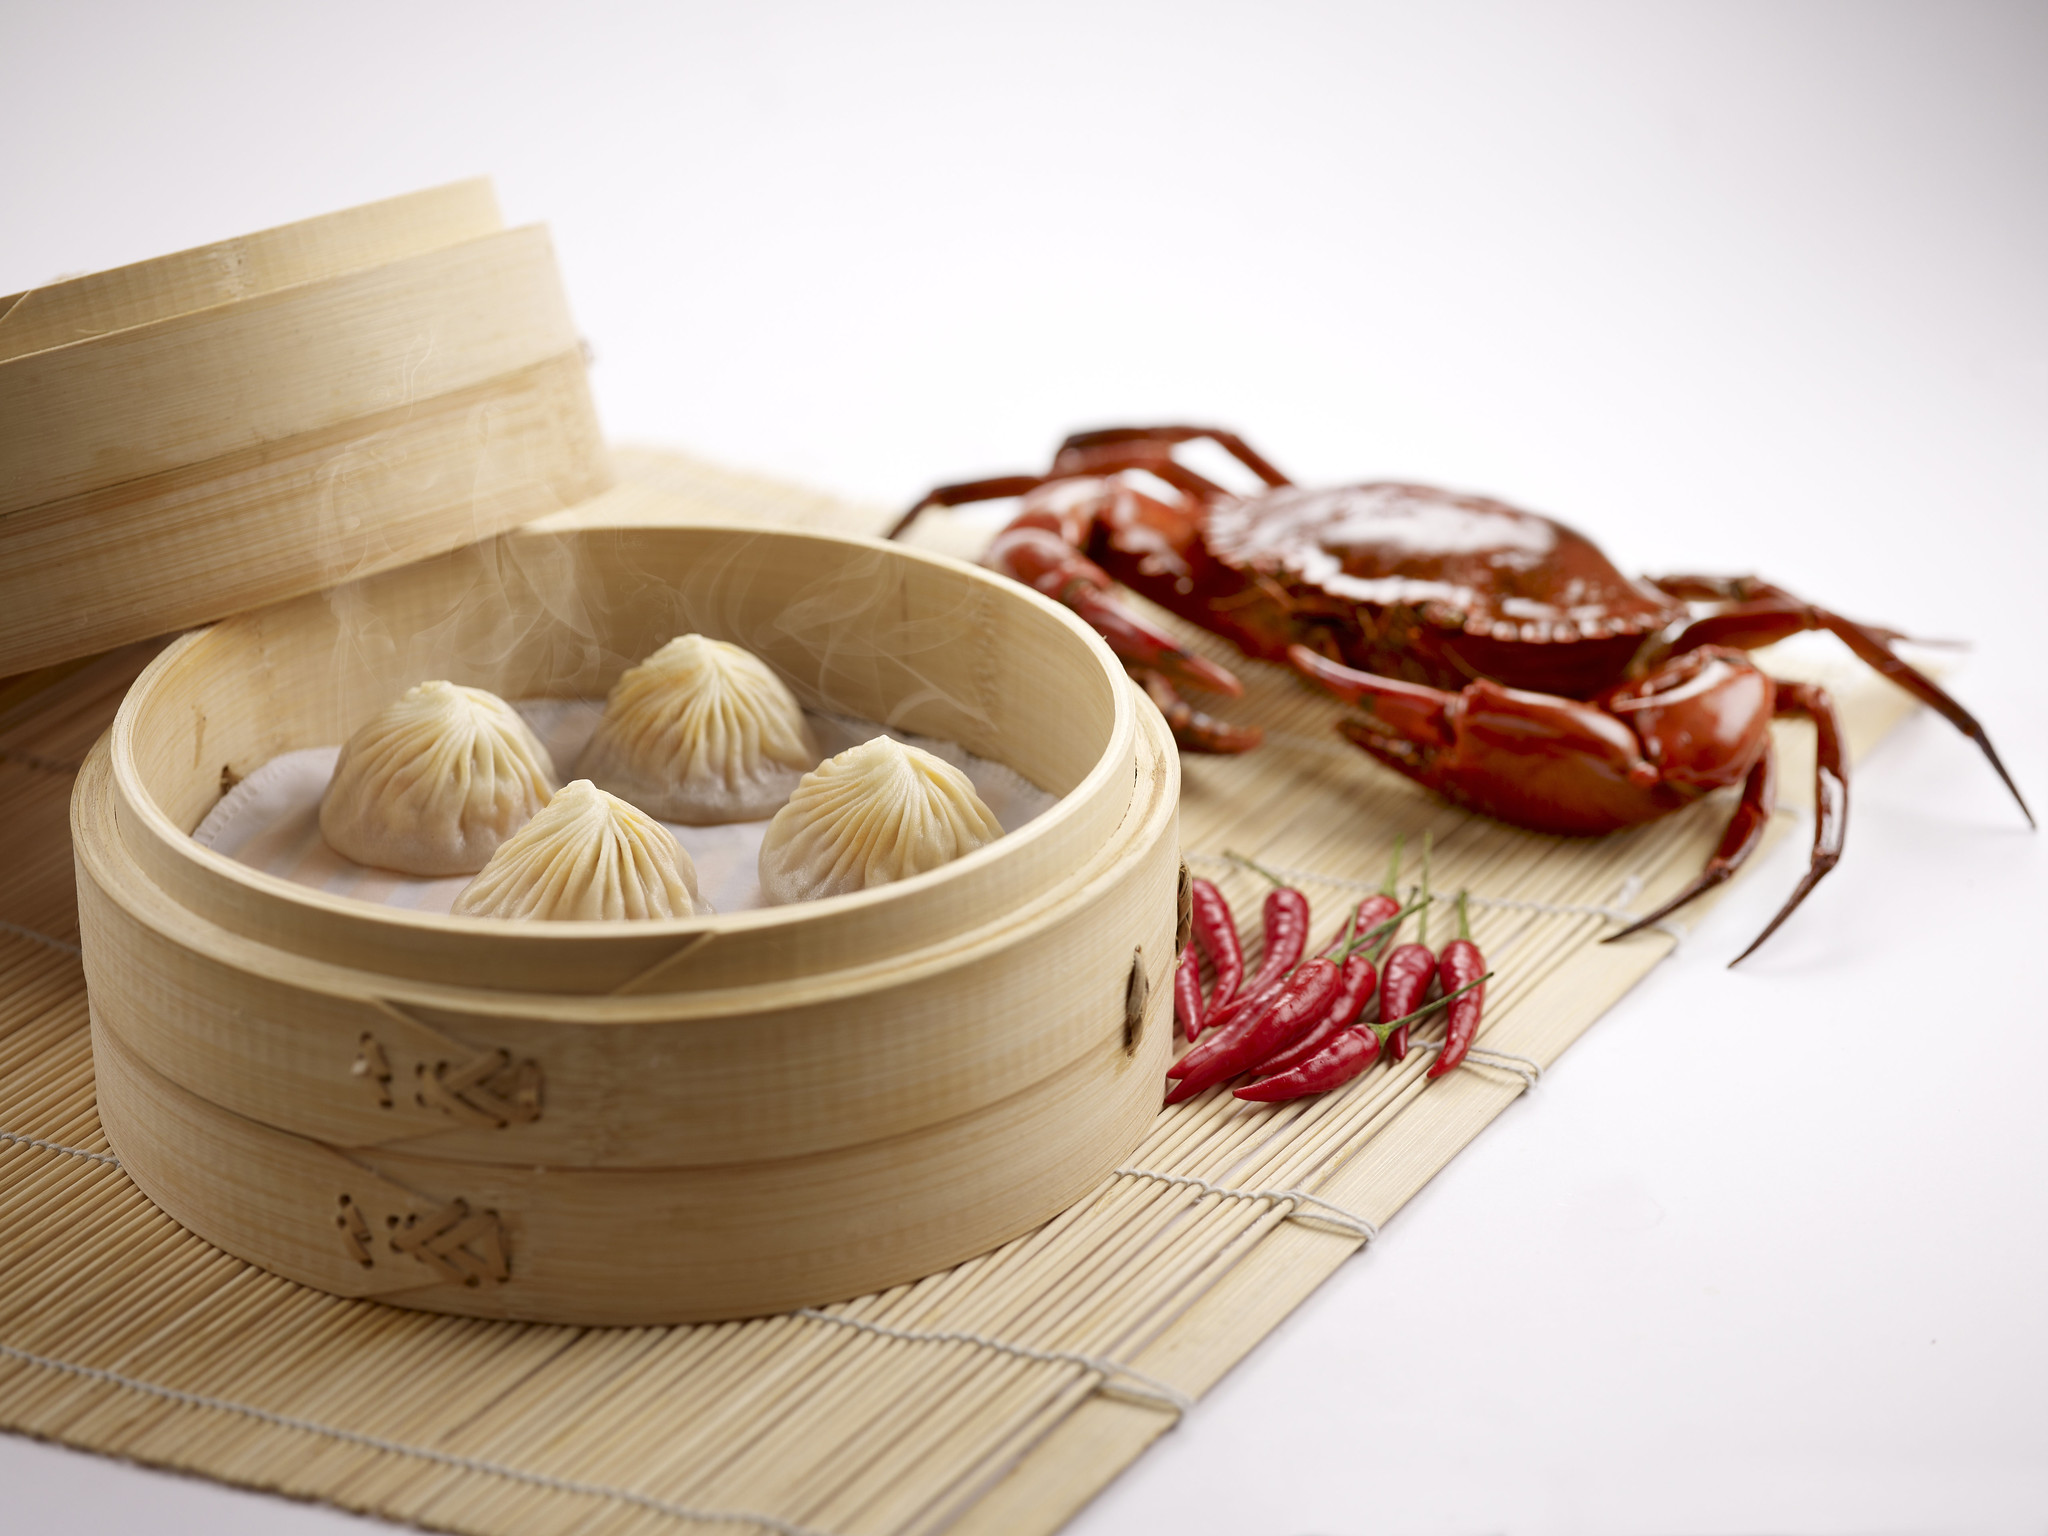 Din Tai Fung brings back Steamed Chilli Crab & Pork Xiao Long Bao for National Day - Alvinology